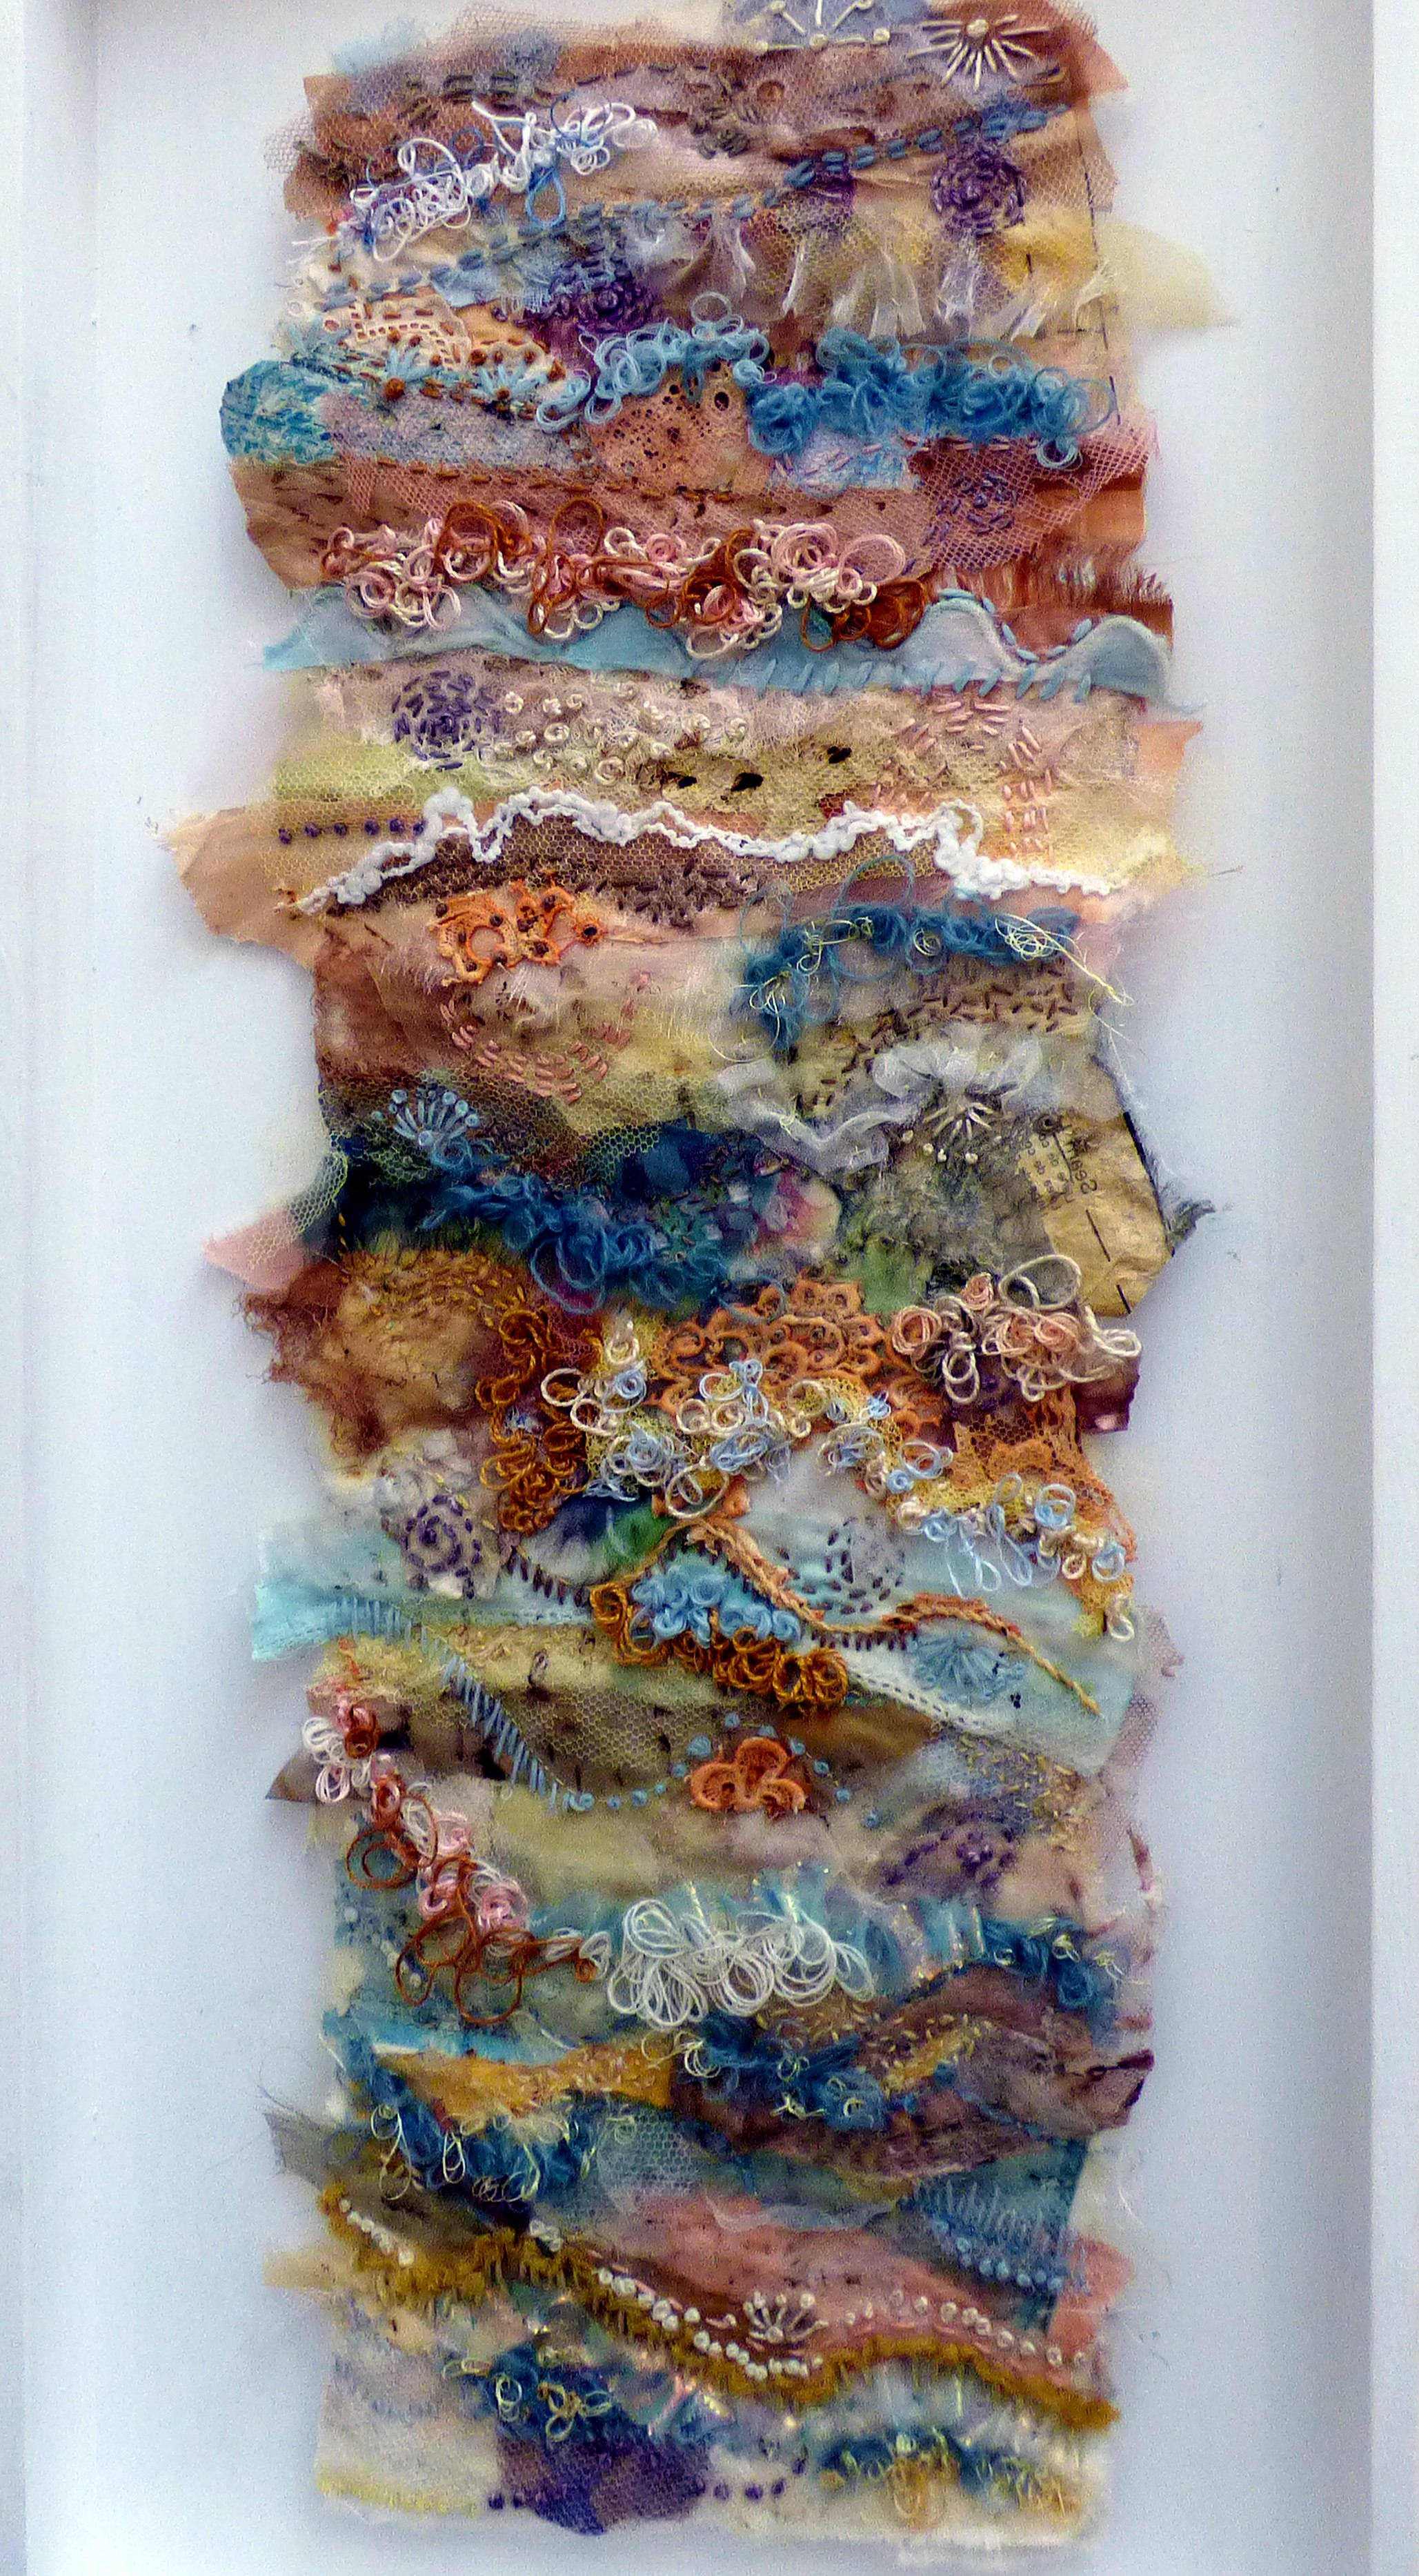 ON THE EDGE OF THE TIDE 2 by Elsa Buch, Textile 21, Aug 2018. Textiles and mixed media